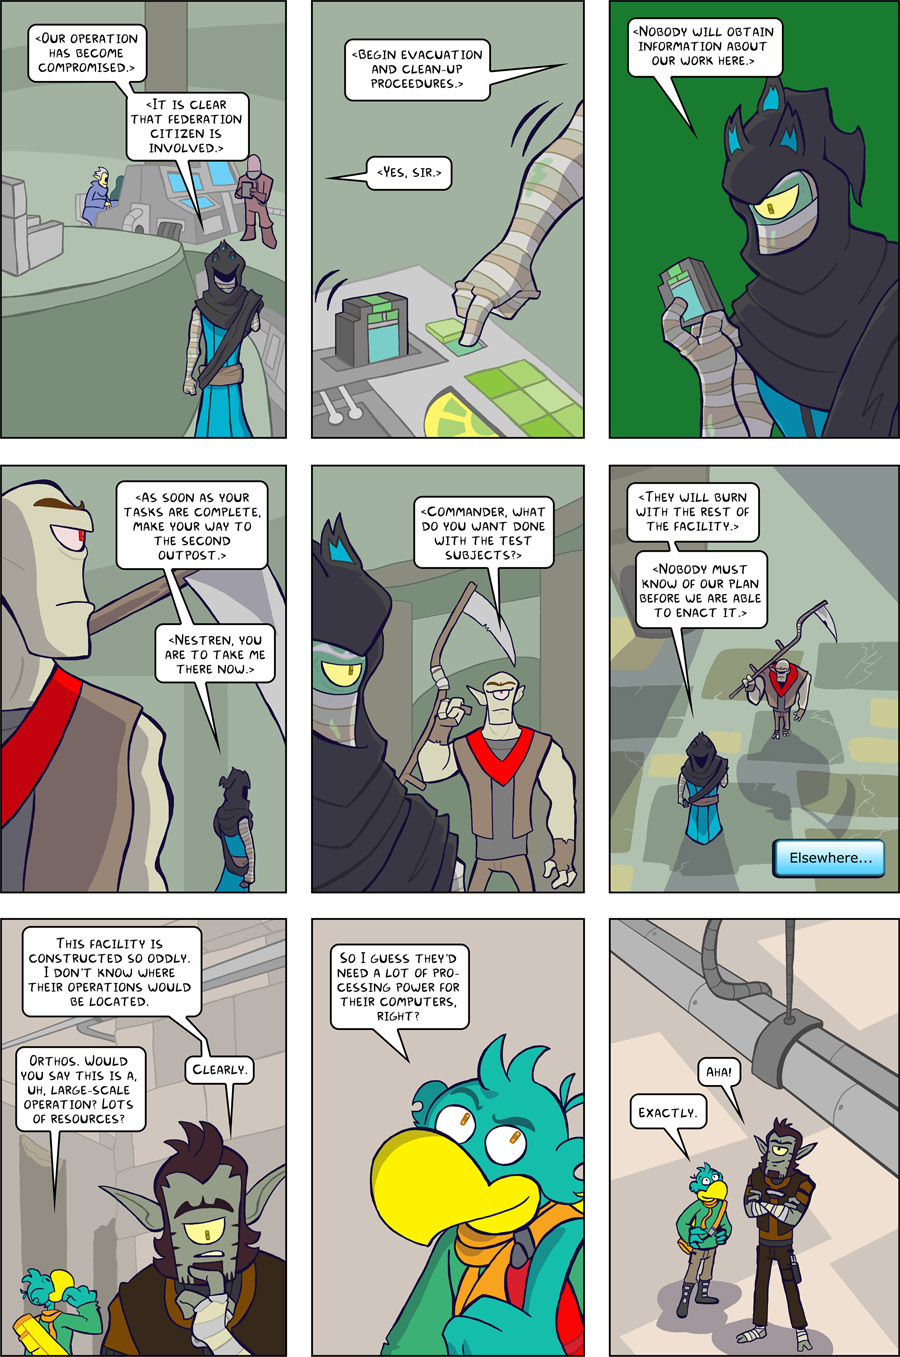 Episode 2: Pg 20